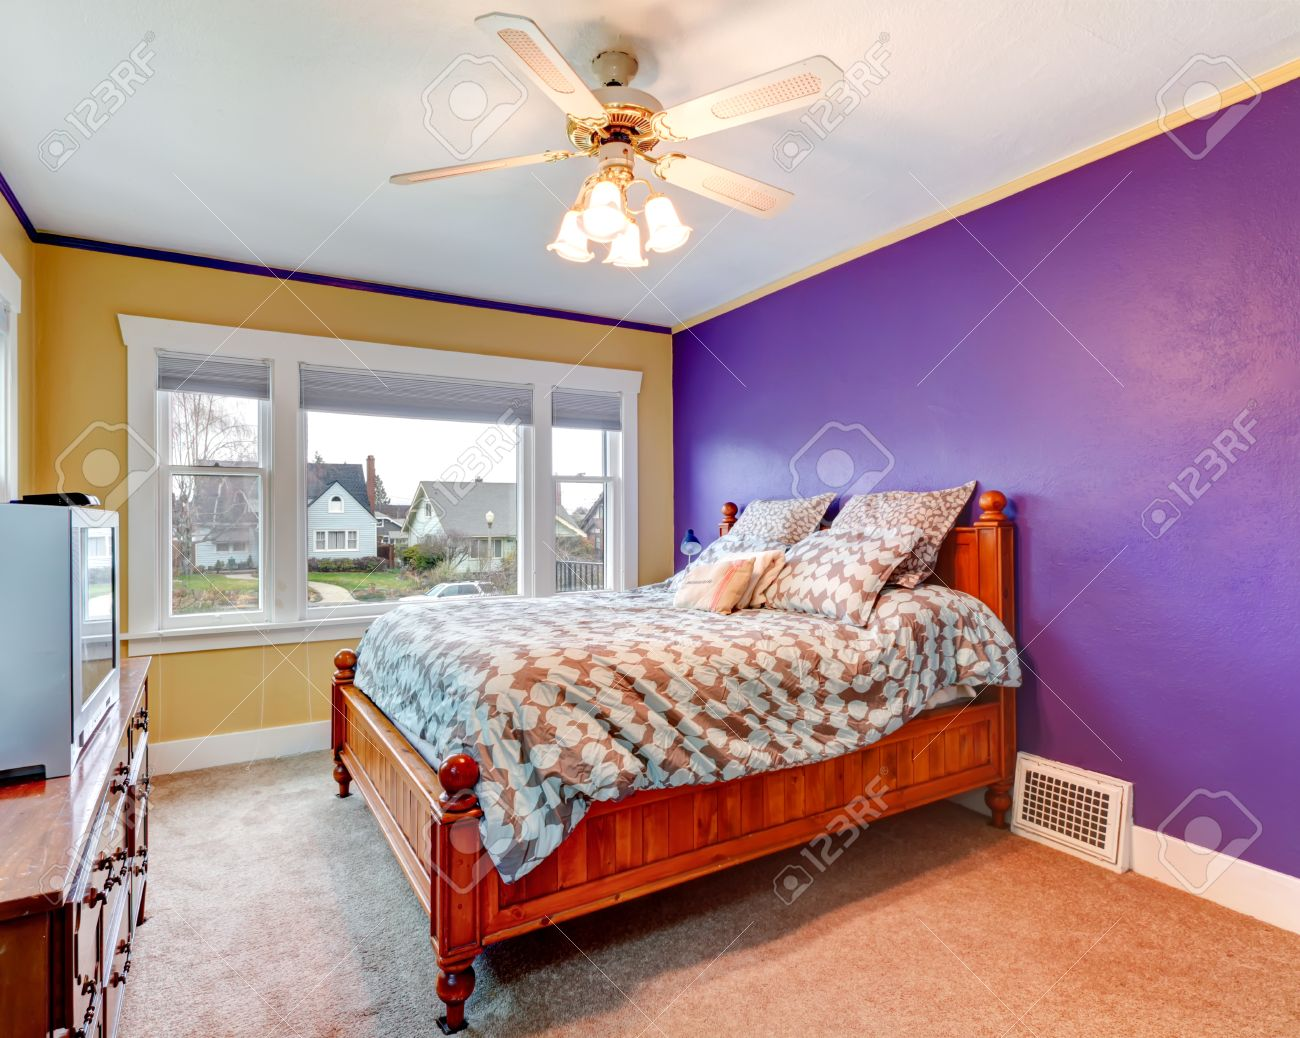 Pareti Viola E Giallo : Bright bedroom with purple and yellow walls carpet floor. furnished